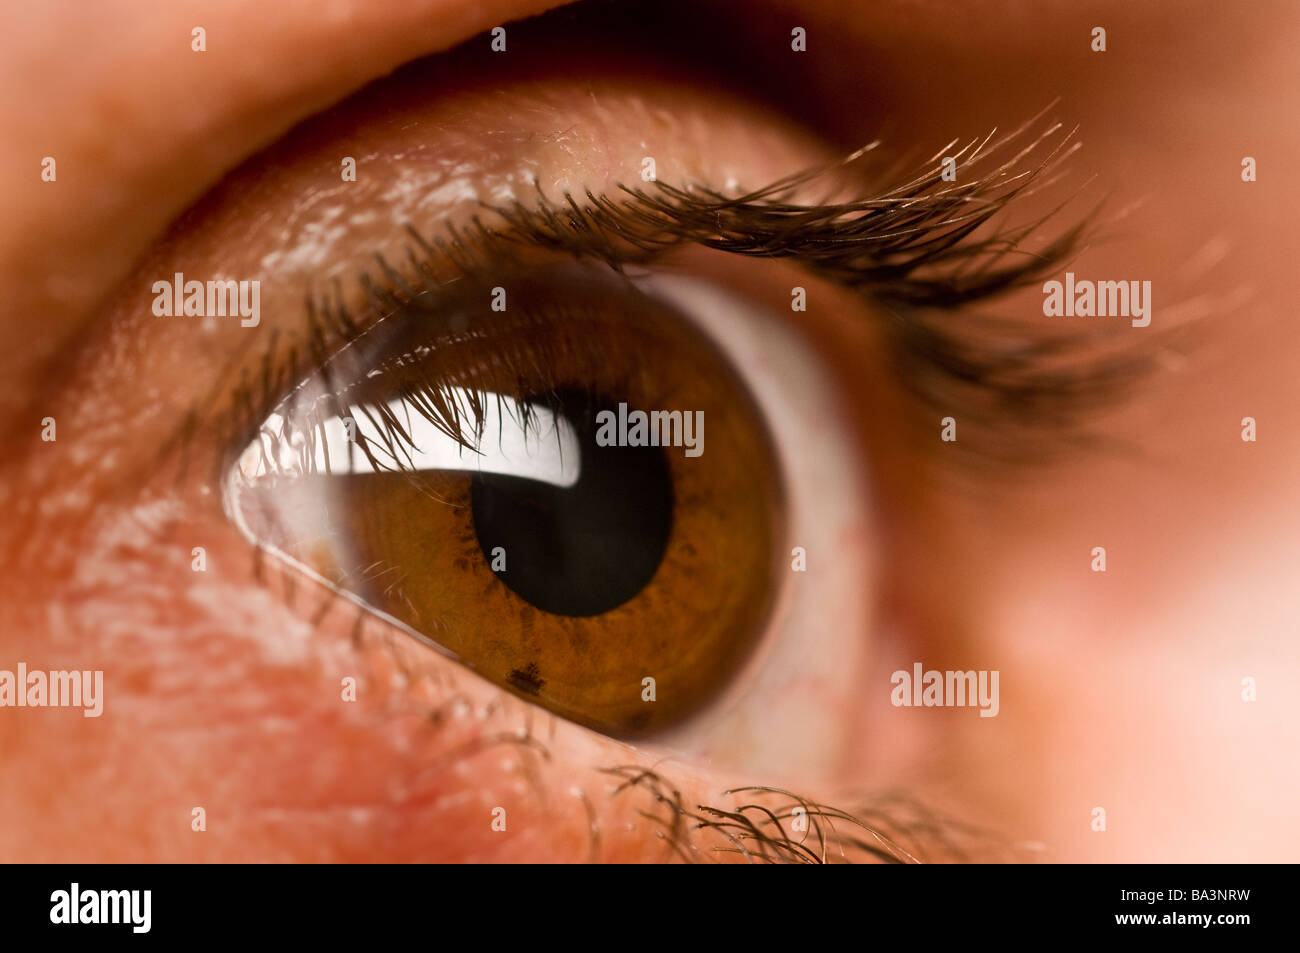 Auge Wimpern Stockbild